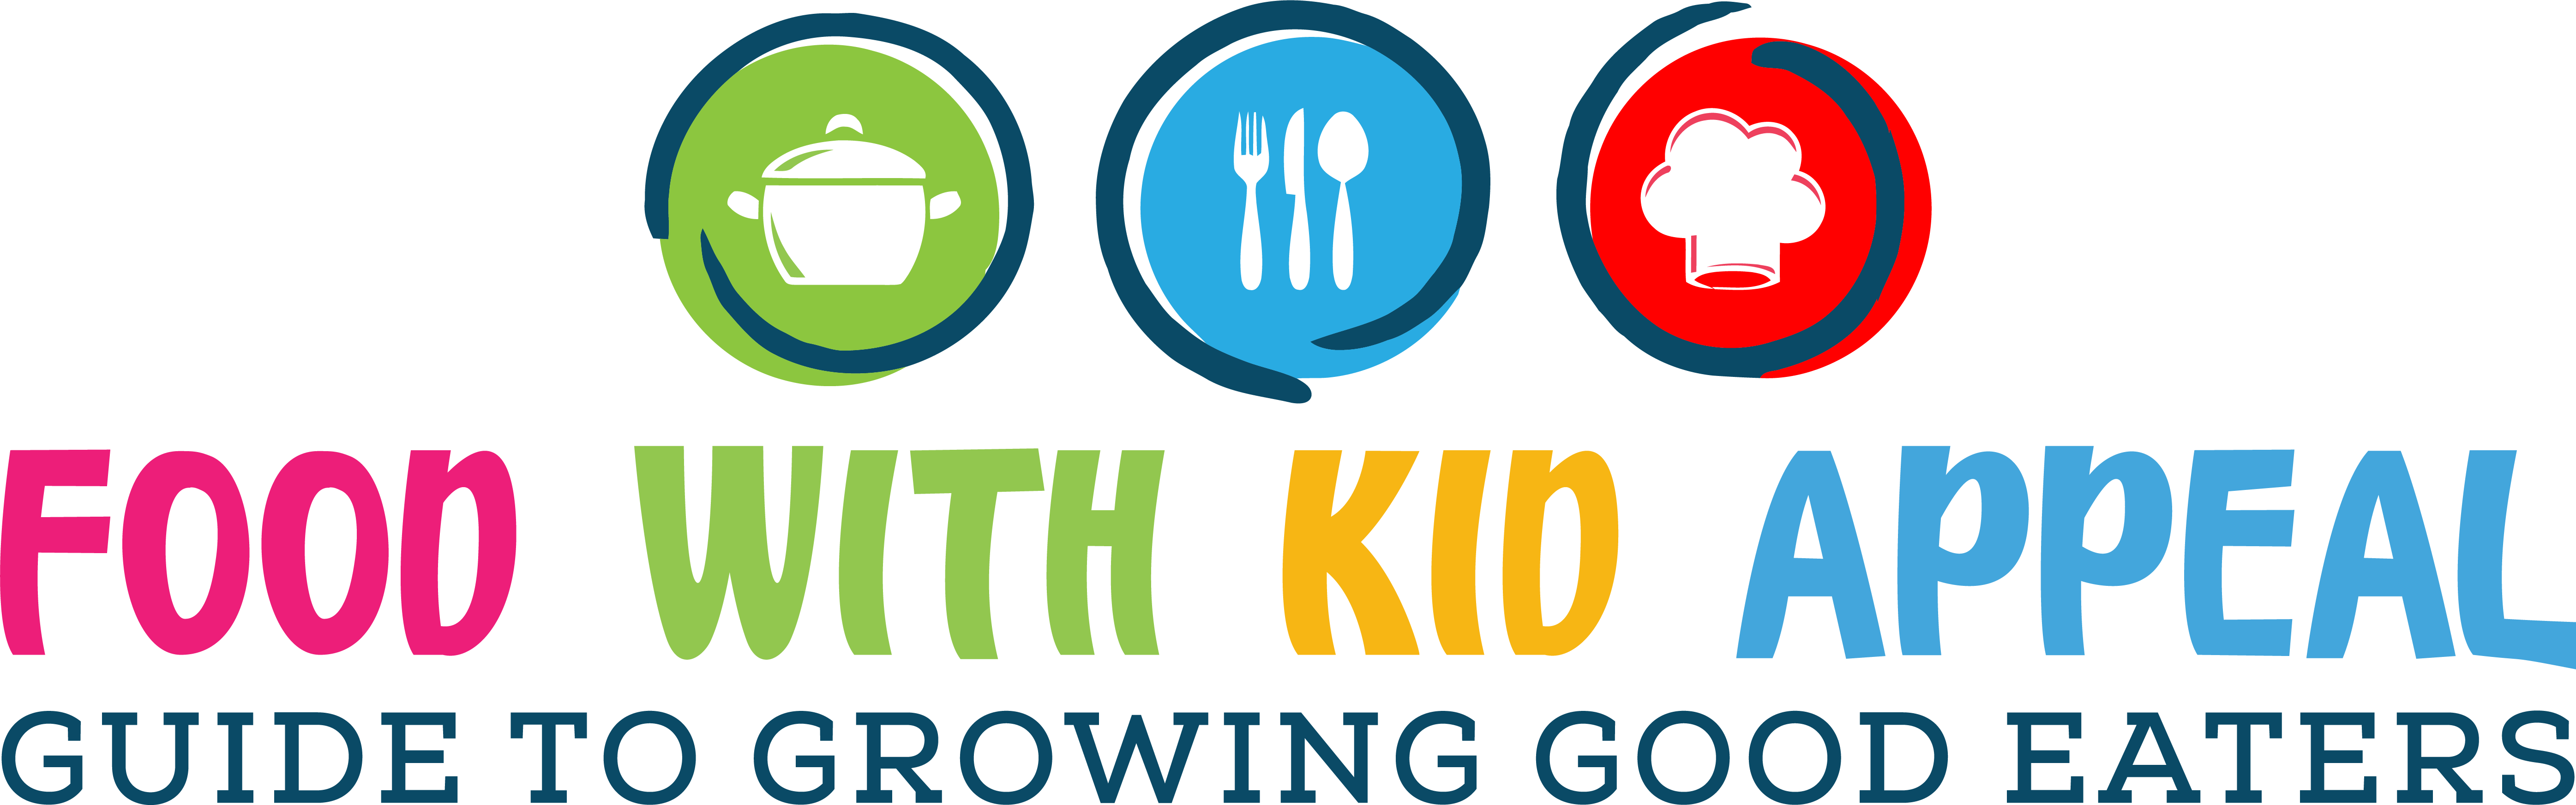 Food With Kid Appeal